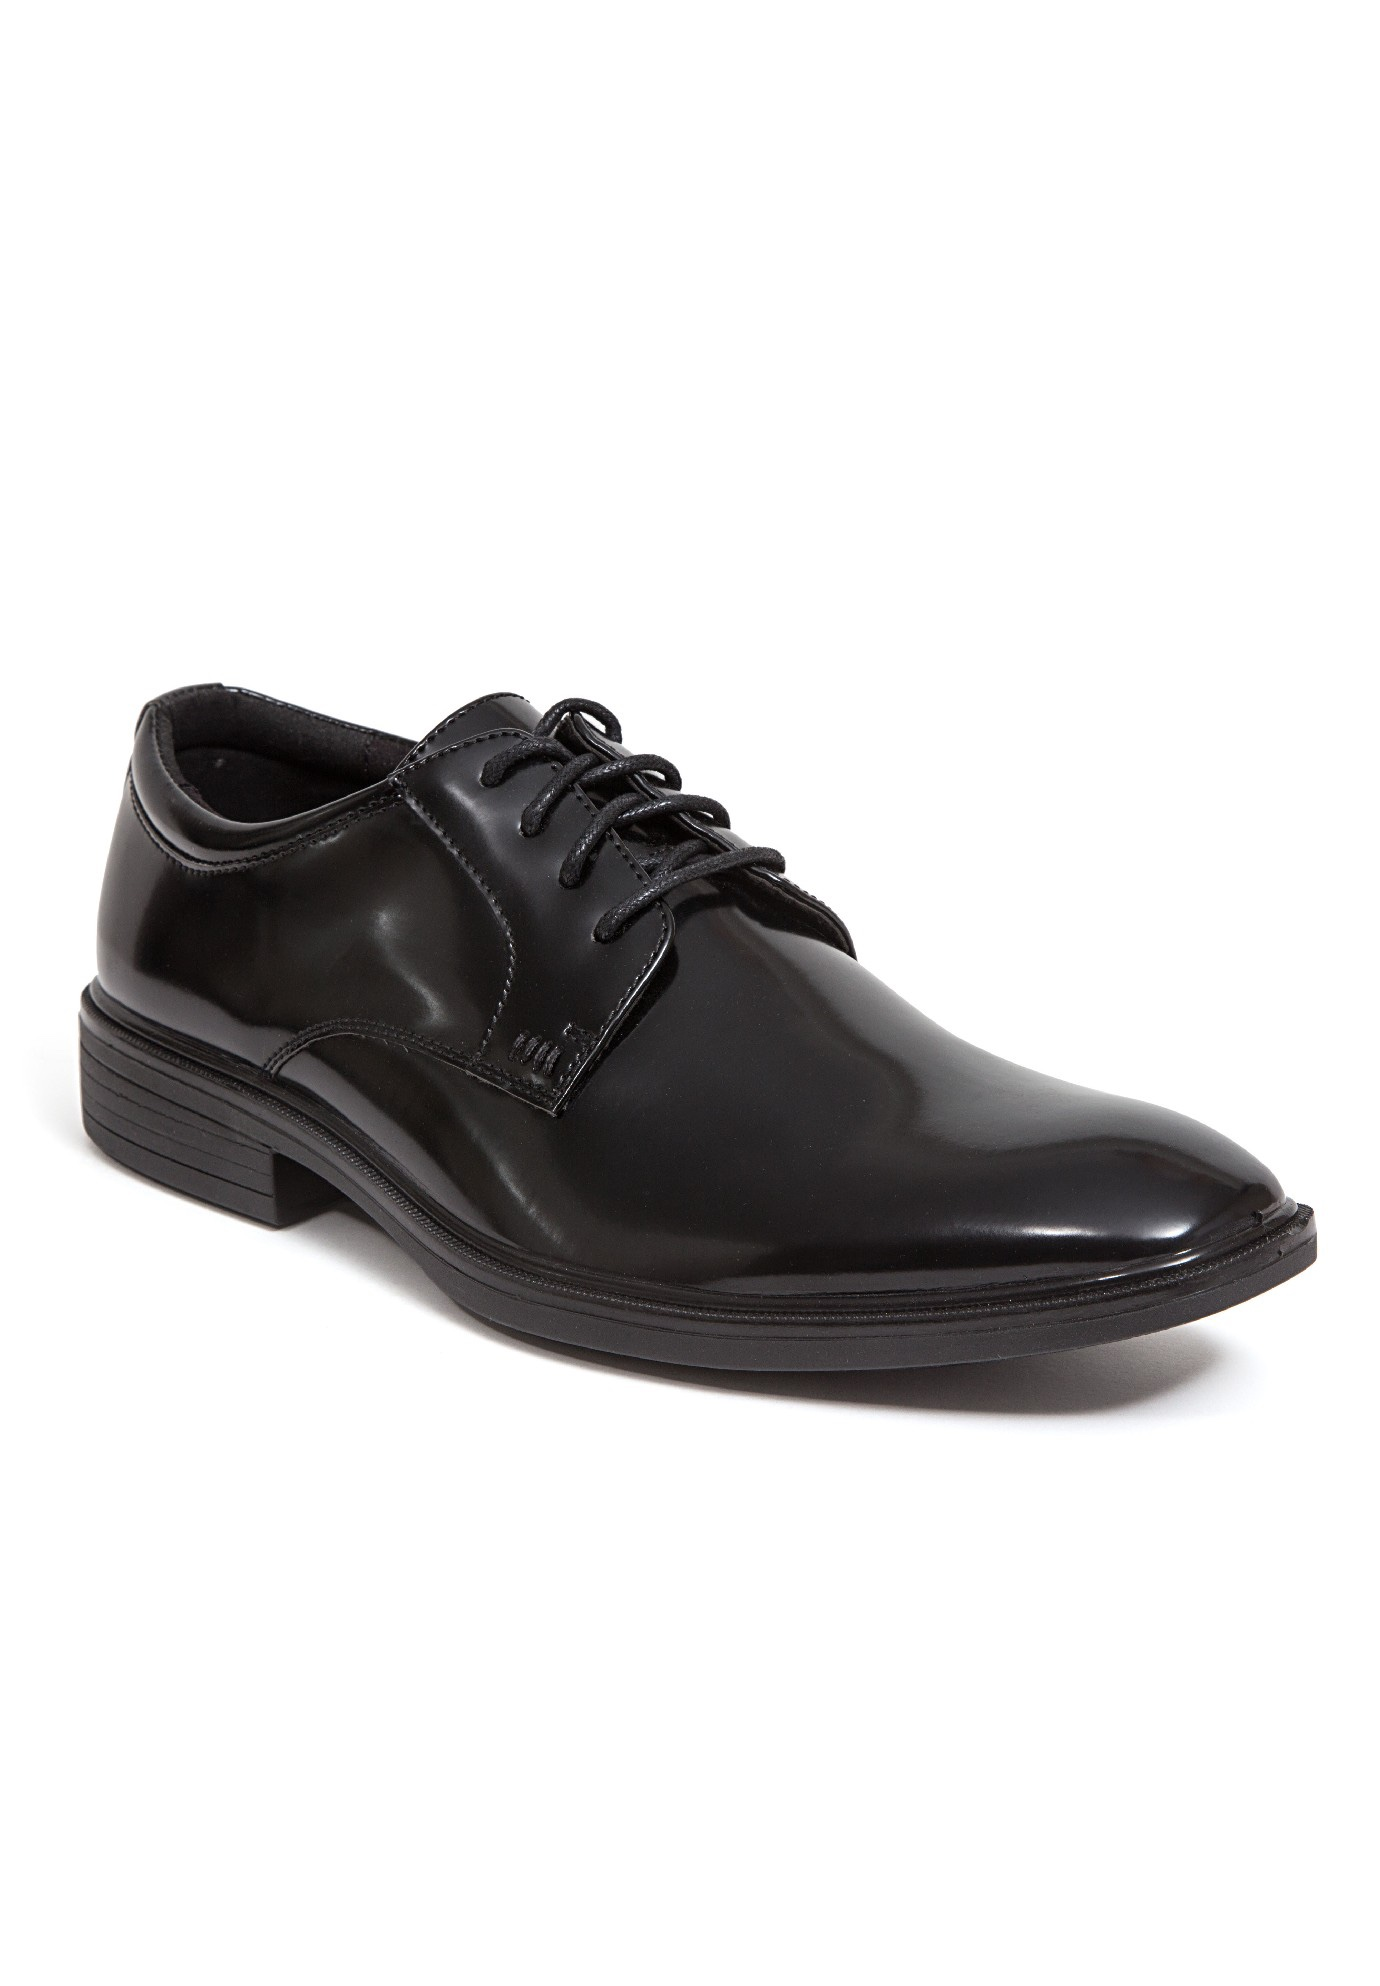 Deer Stags® Tallon Oxford Shoes,